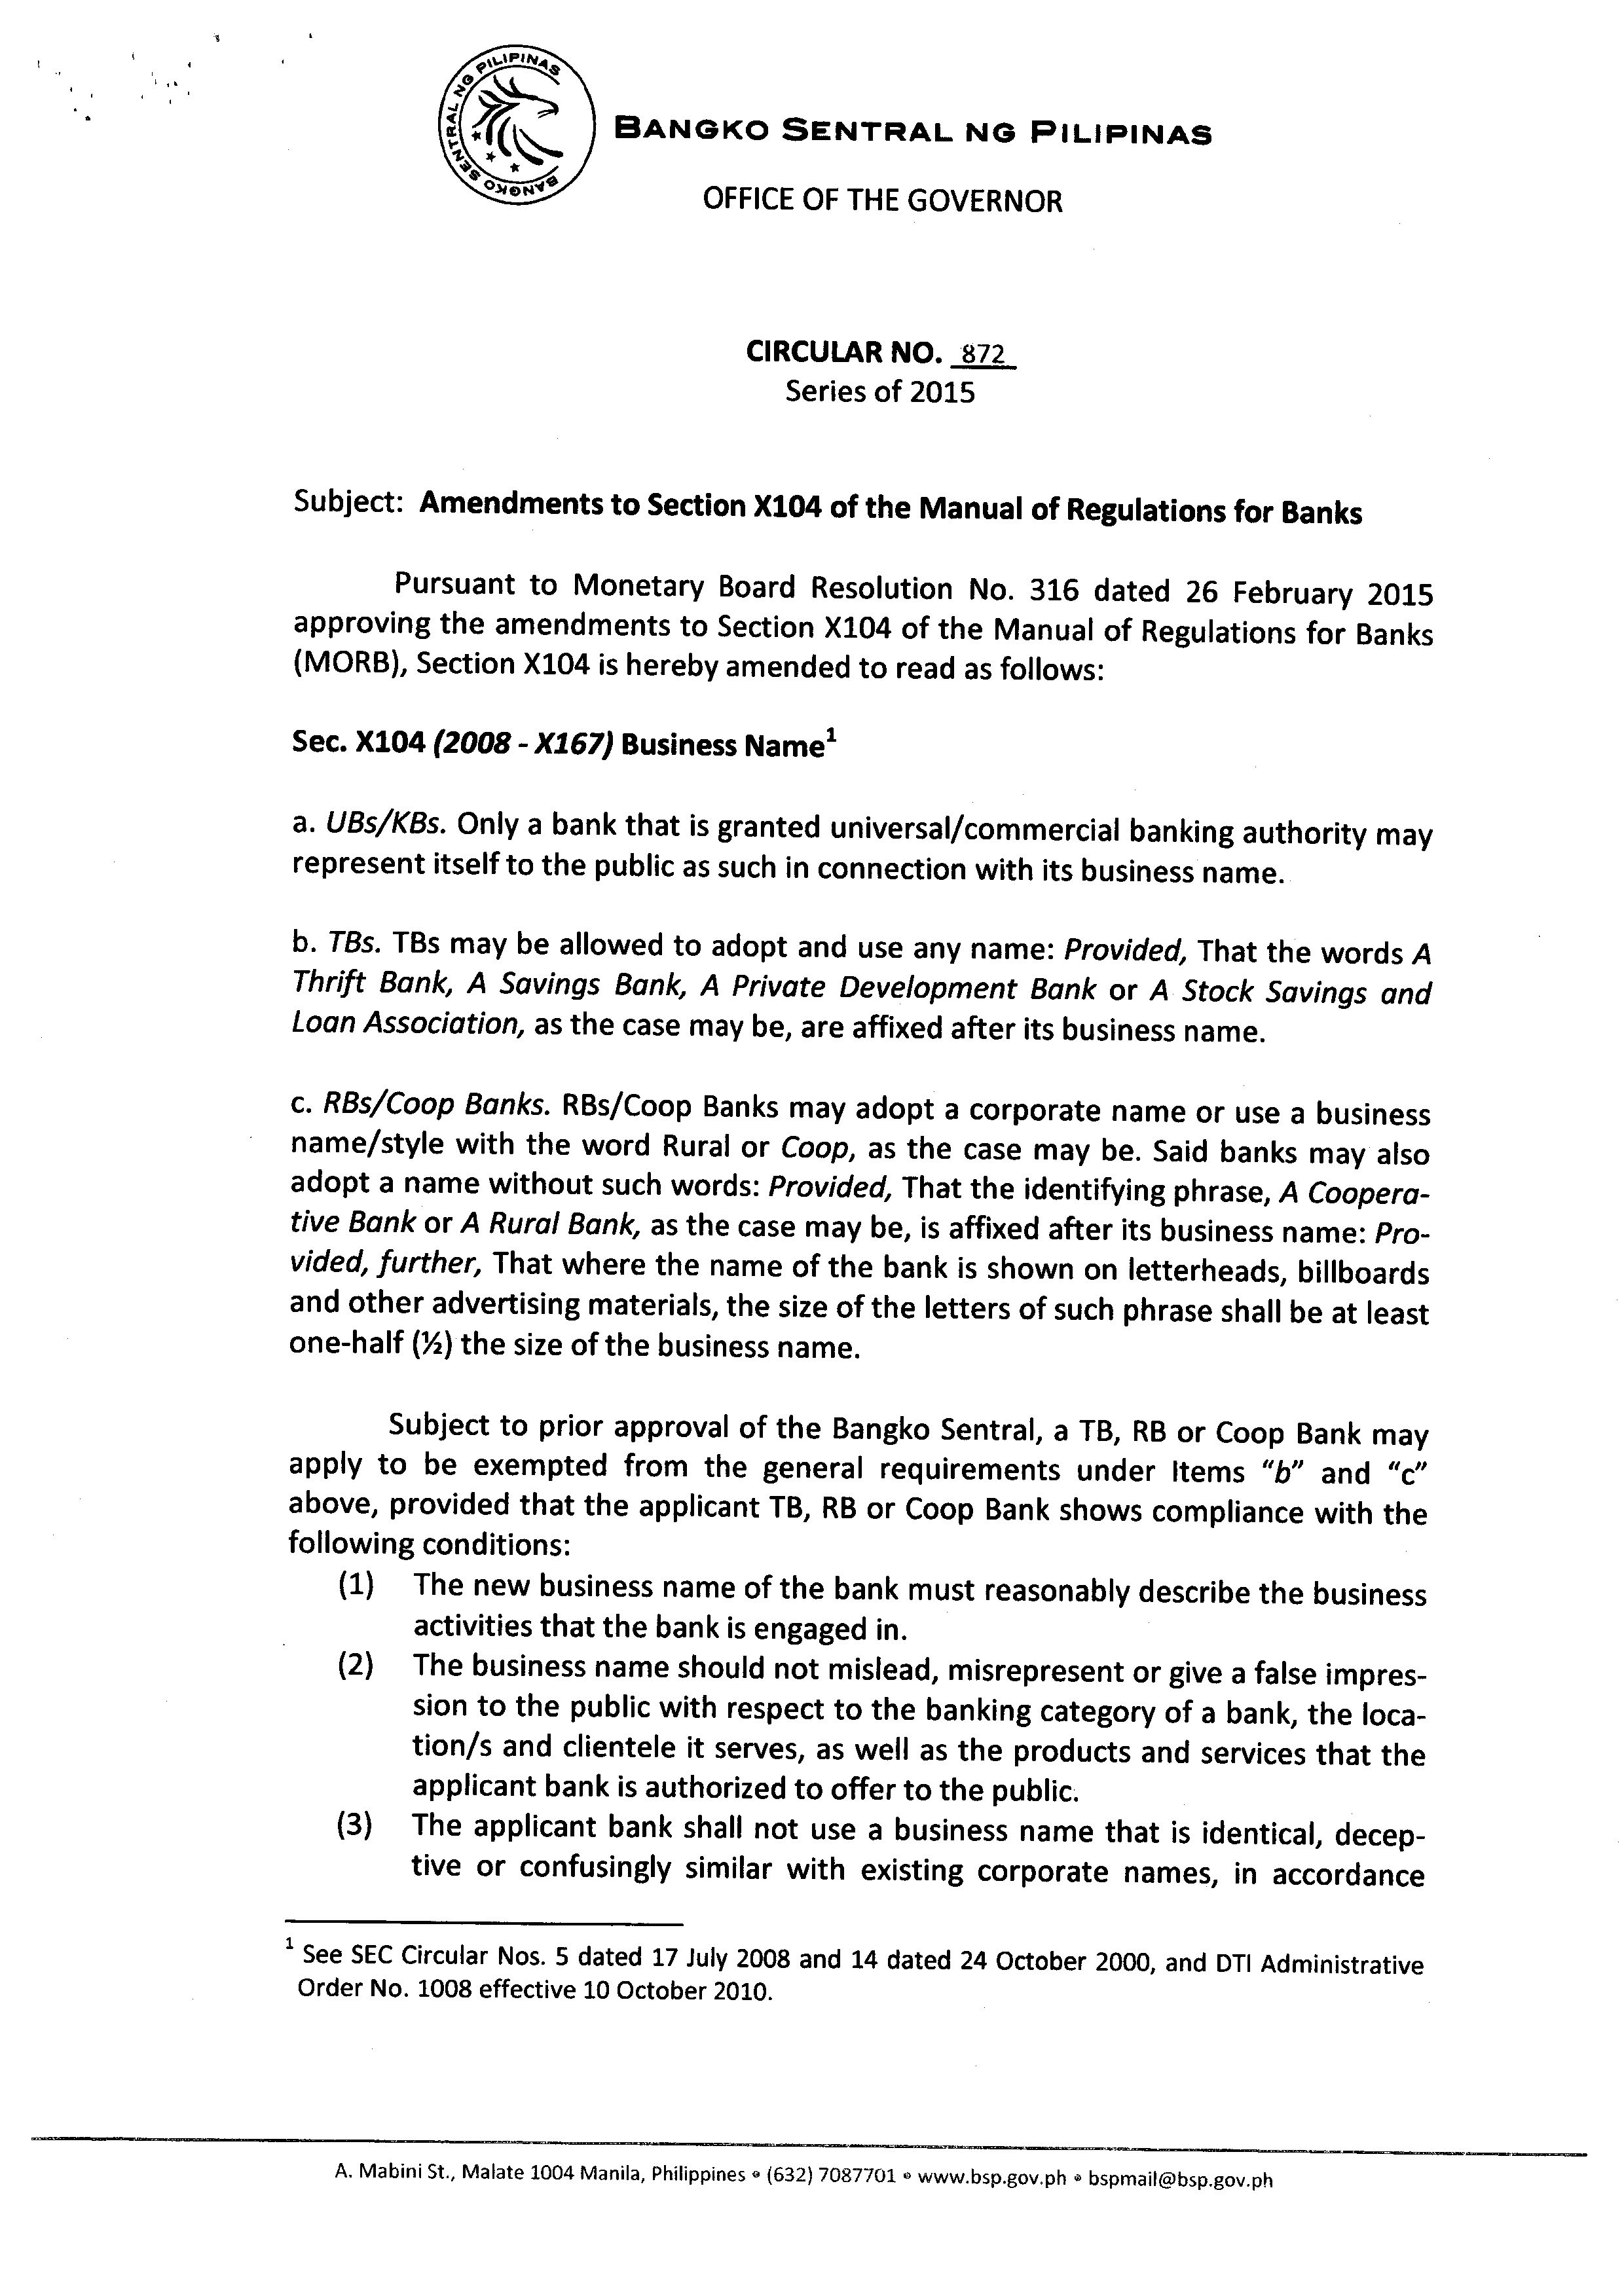 bsp circular no 872 amendments to section x104 of the manual of